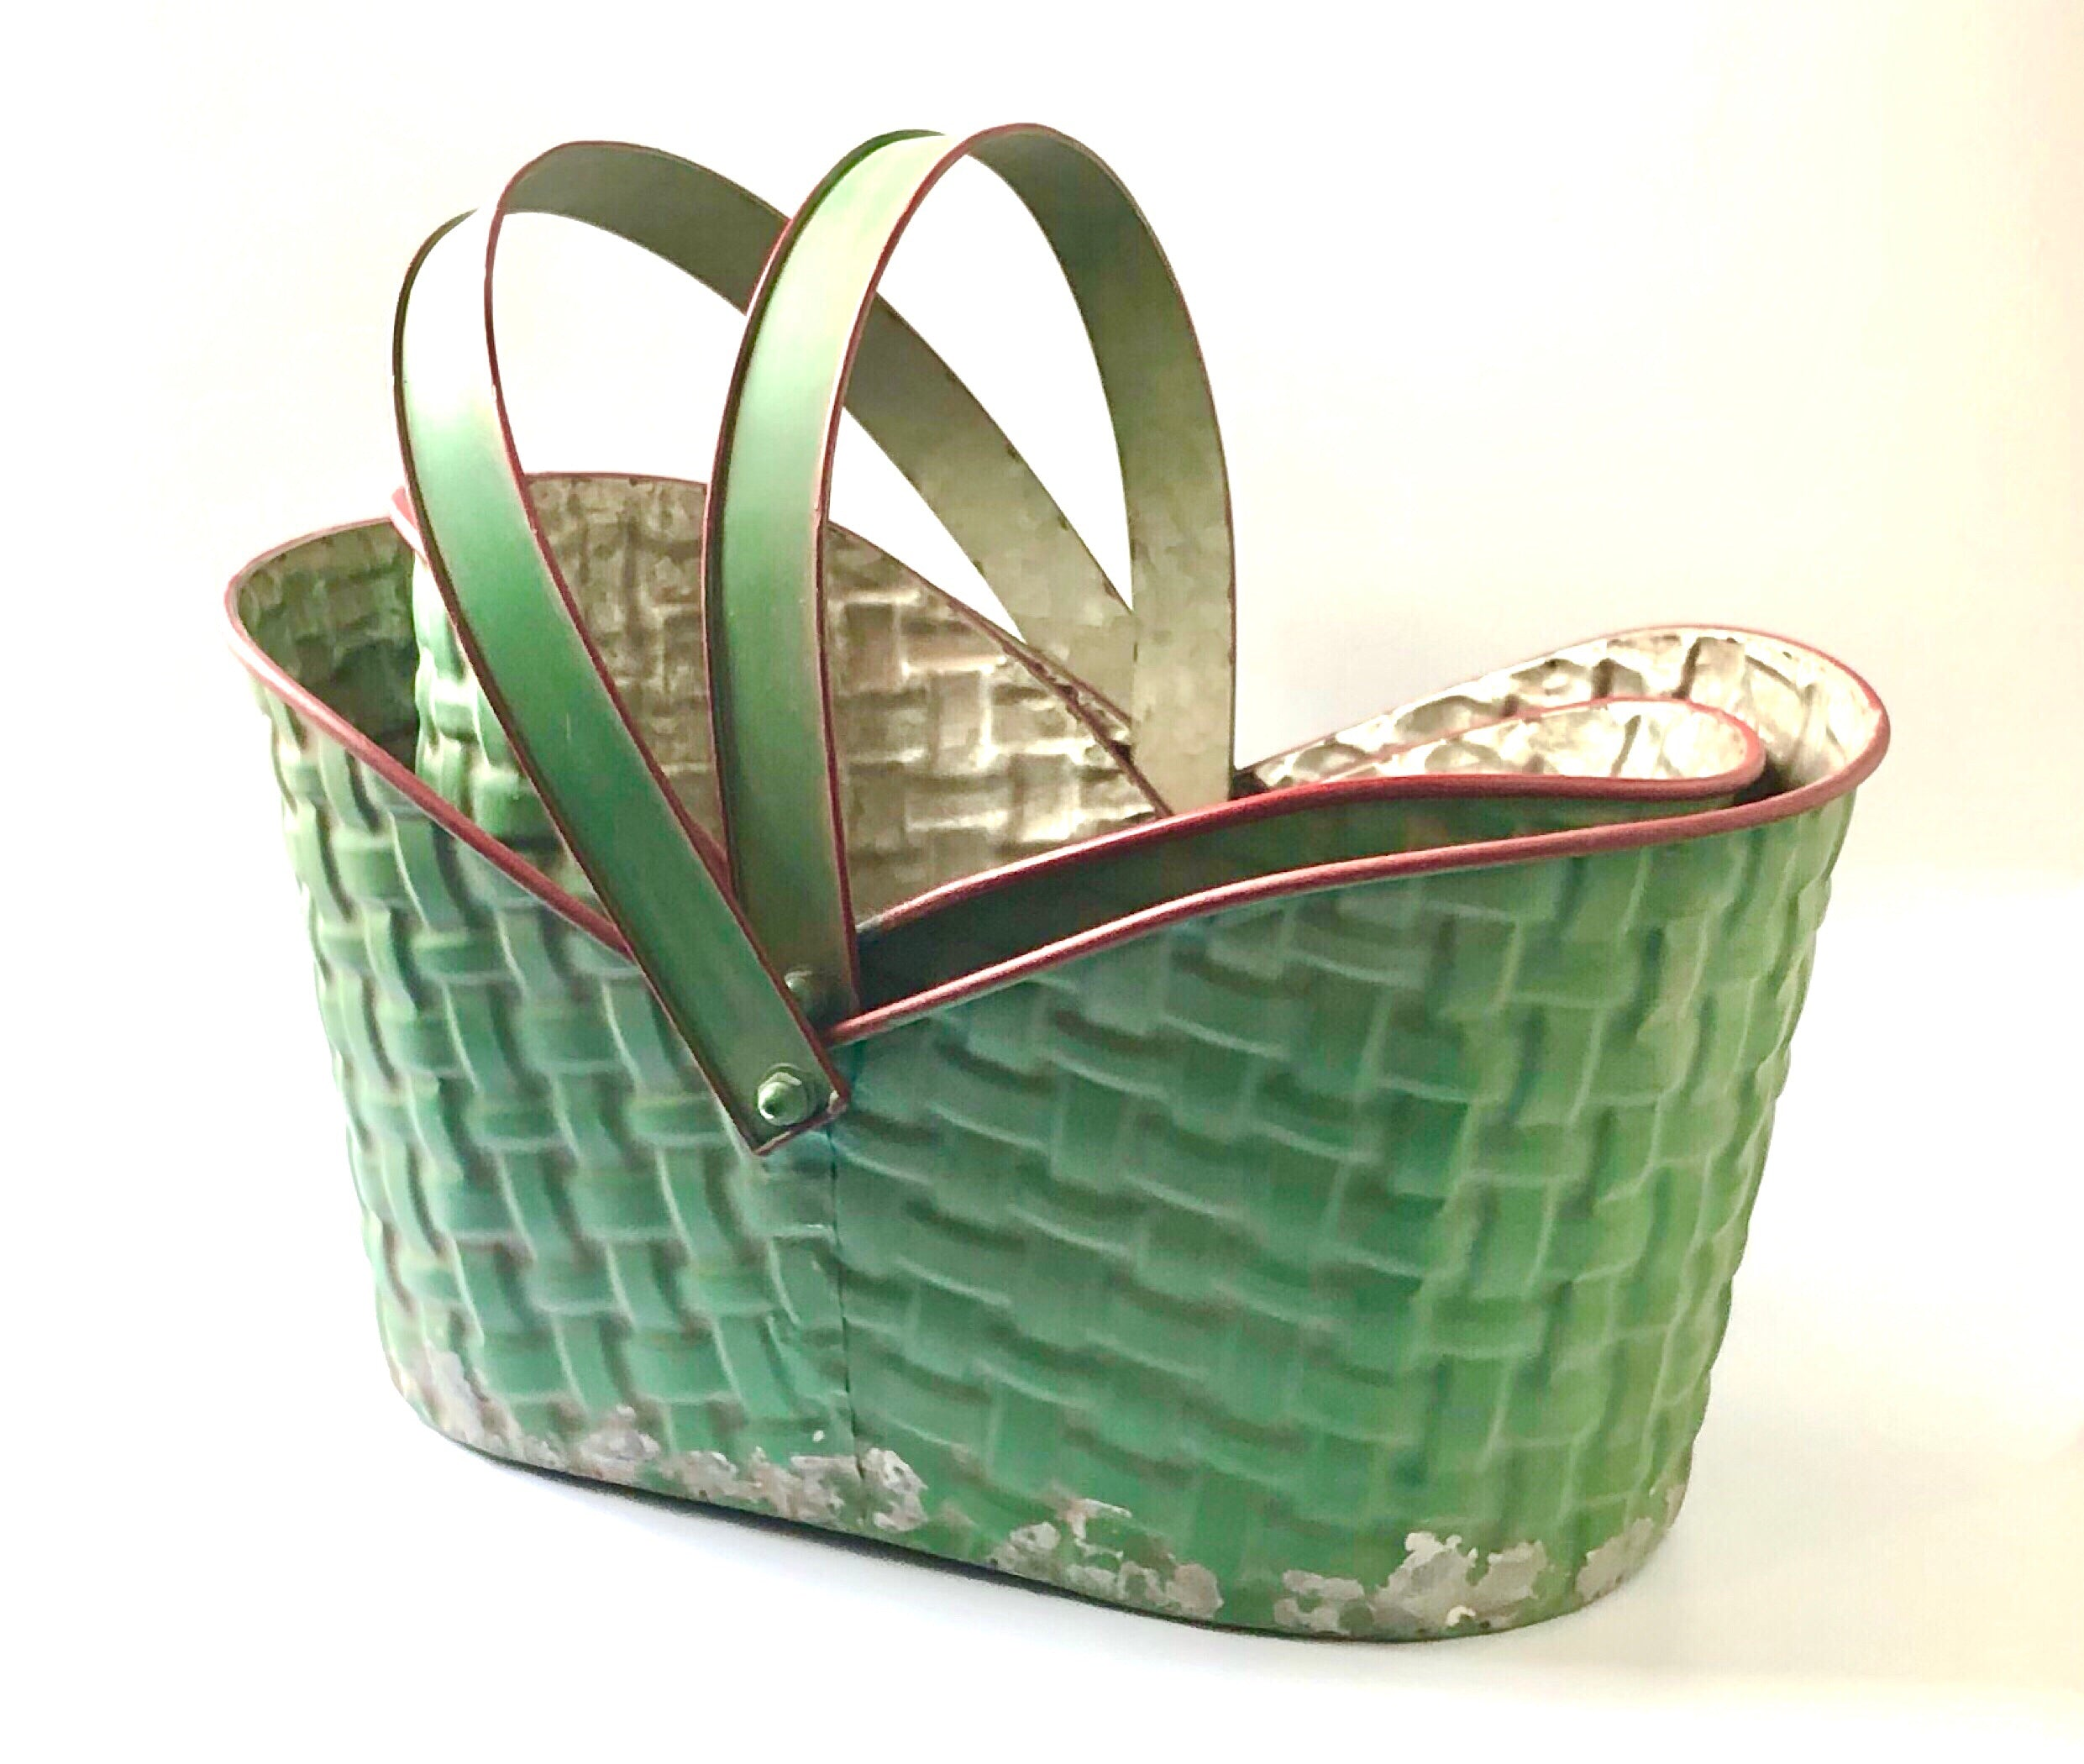 Vintage Style Christmas Baskets With Handles